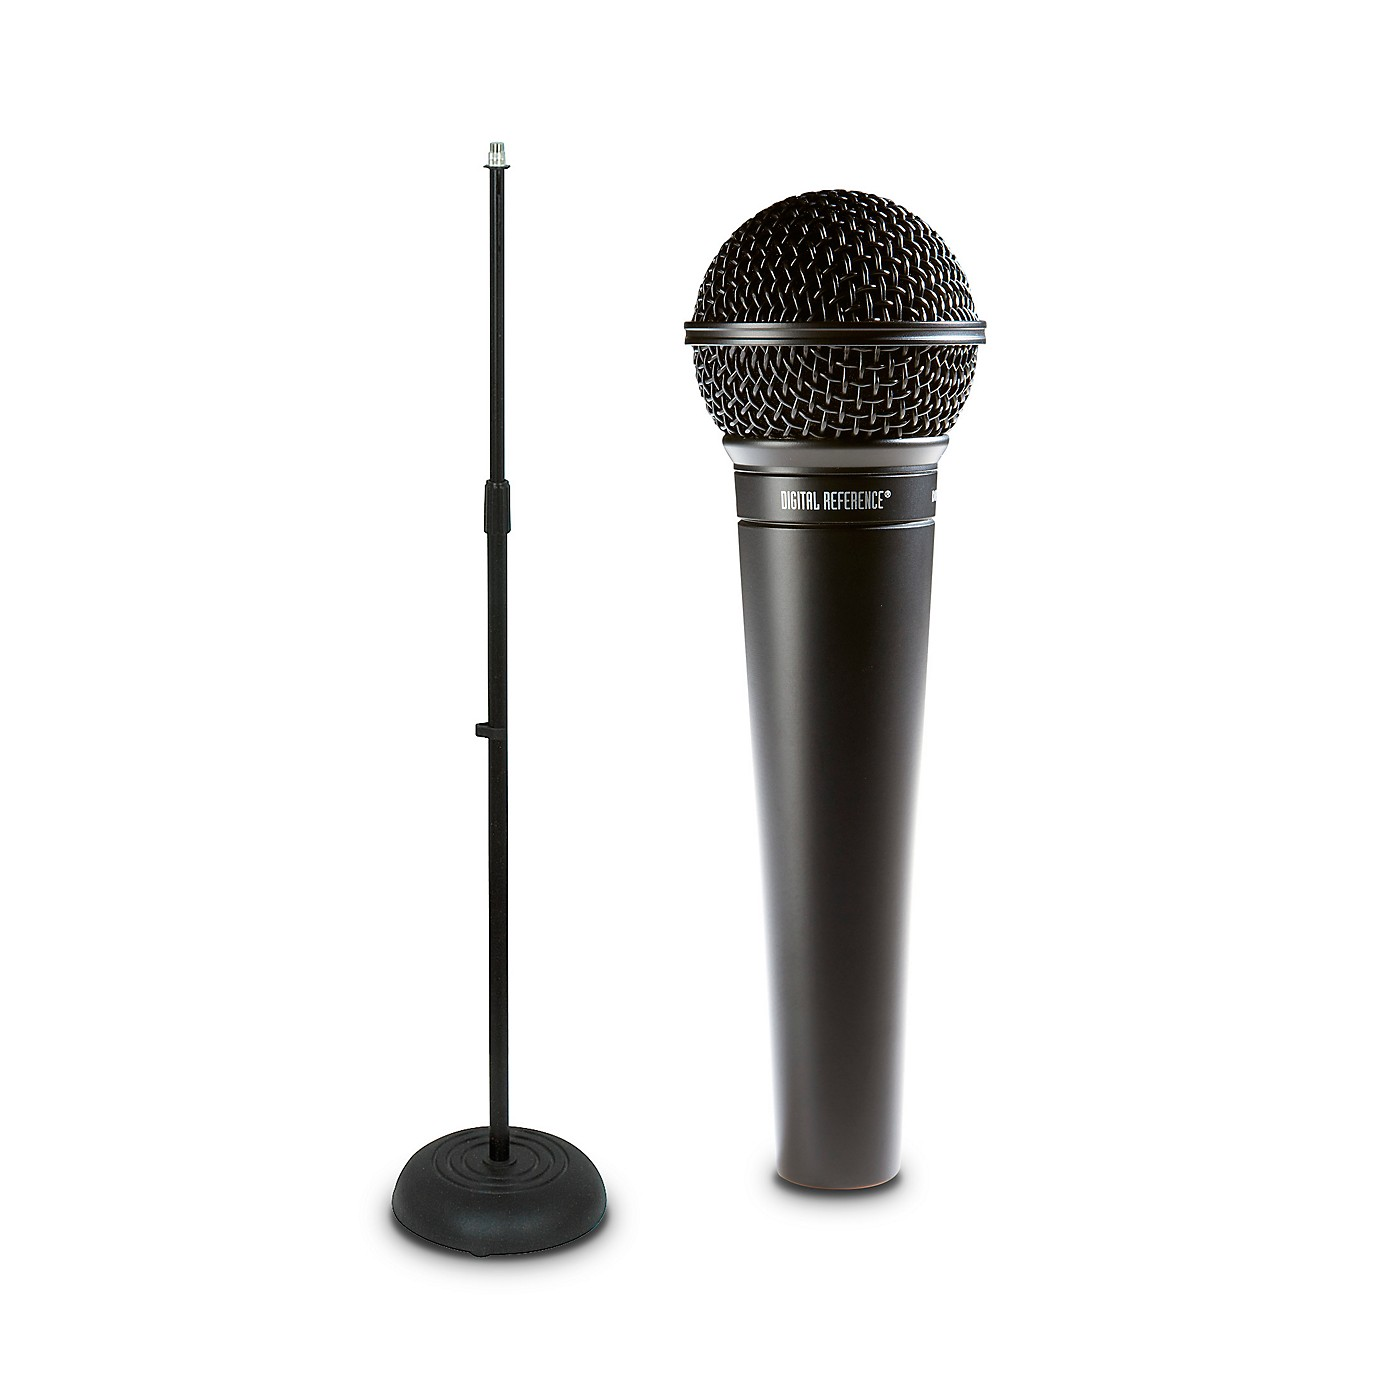 Digital Reference DRV100 Dynamic Cardioid Handheld Microphone And Mic Stand Package thumbnail